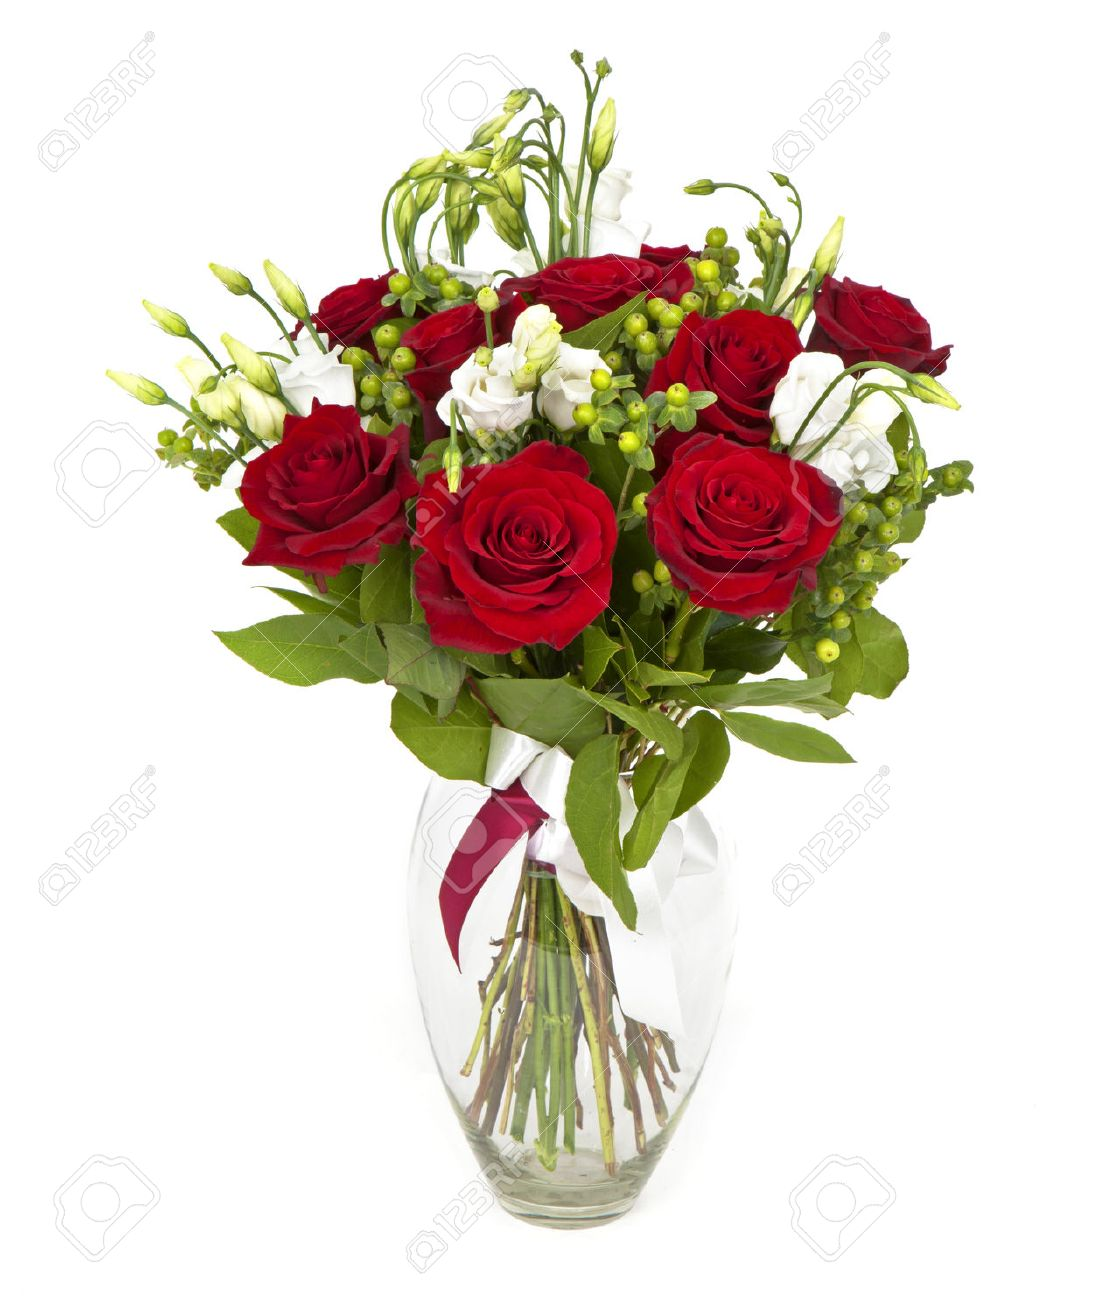 Bouquet Of Red Roses And White Flowers On White Stock Photo Picture